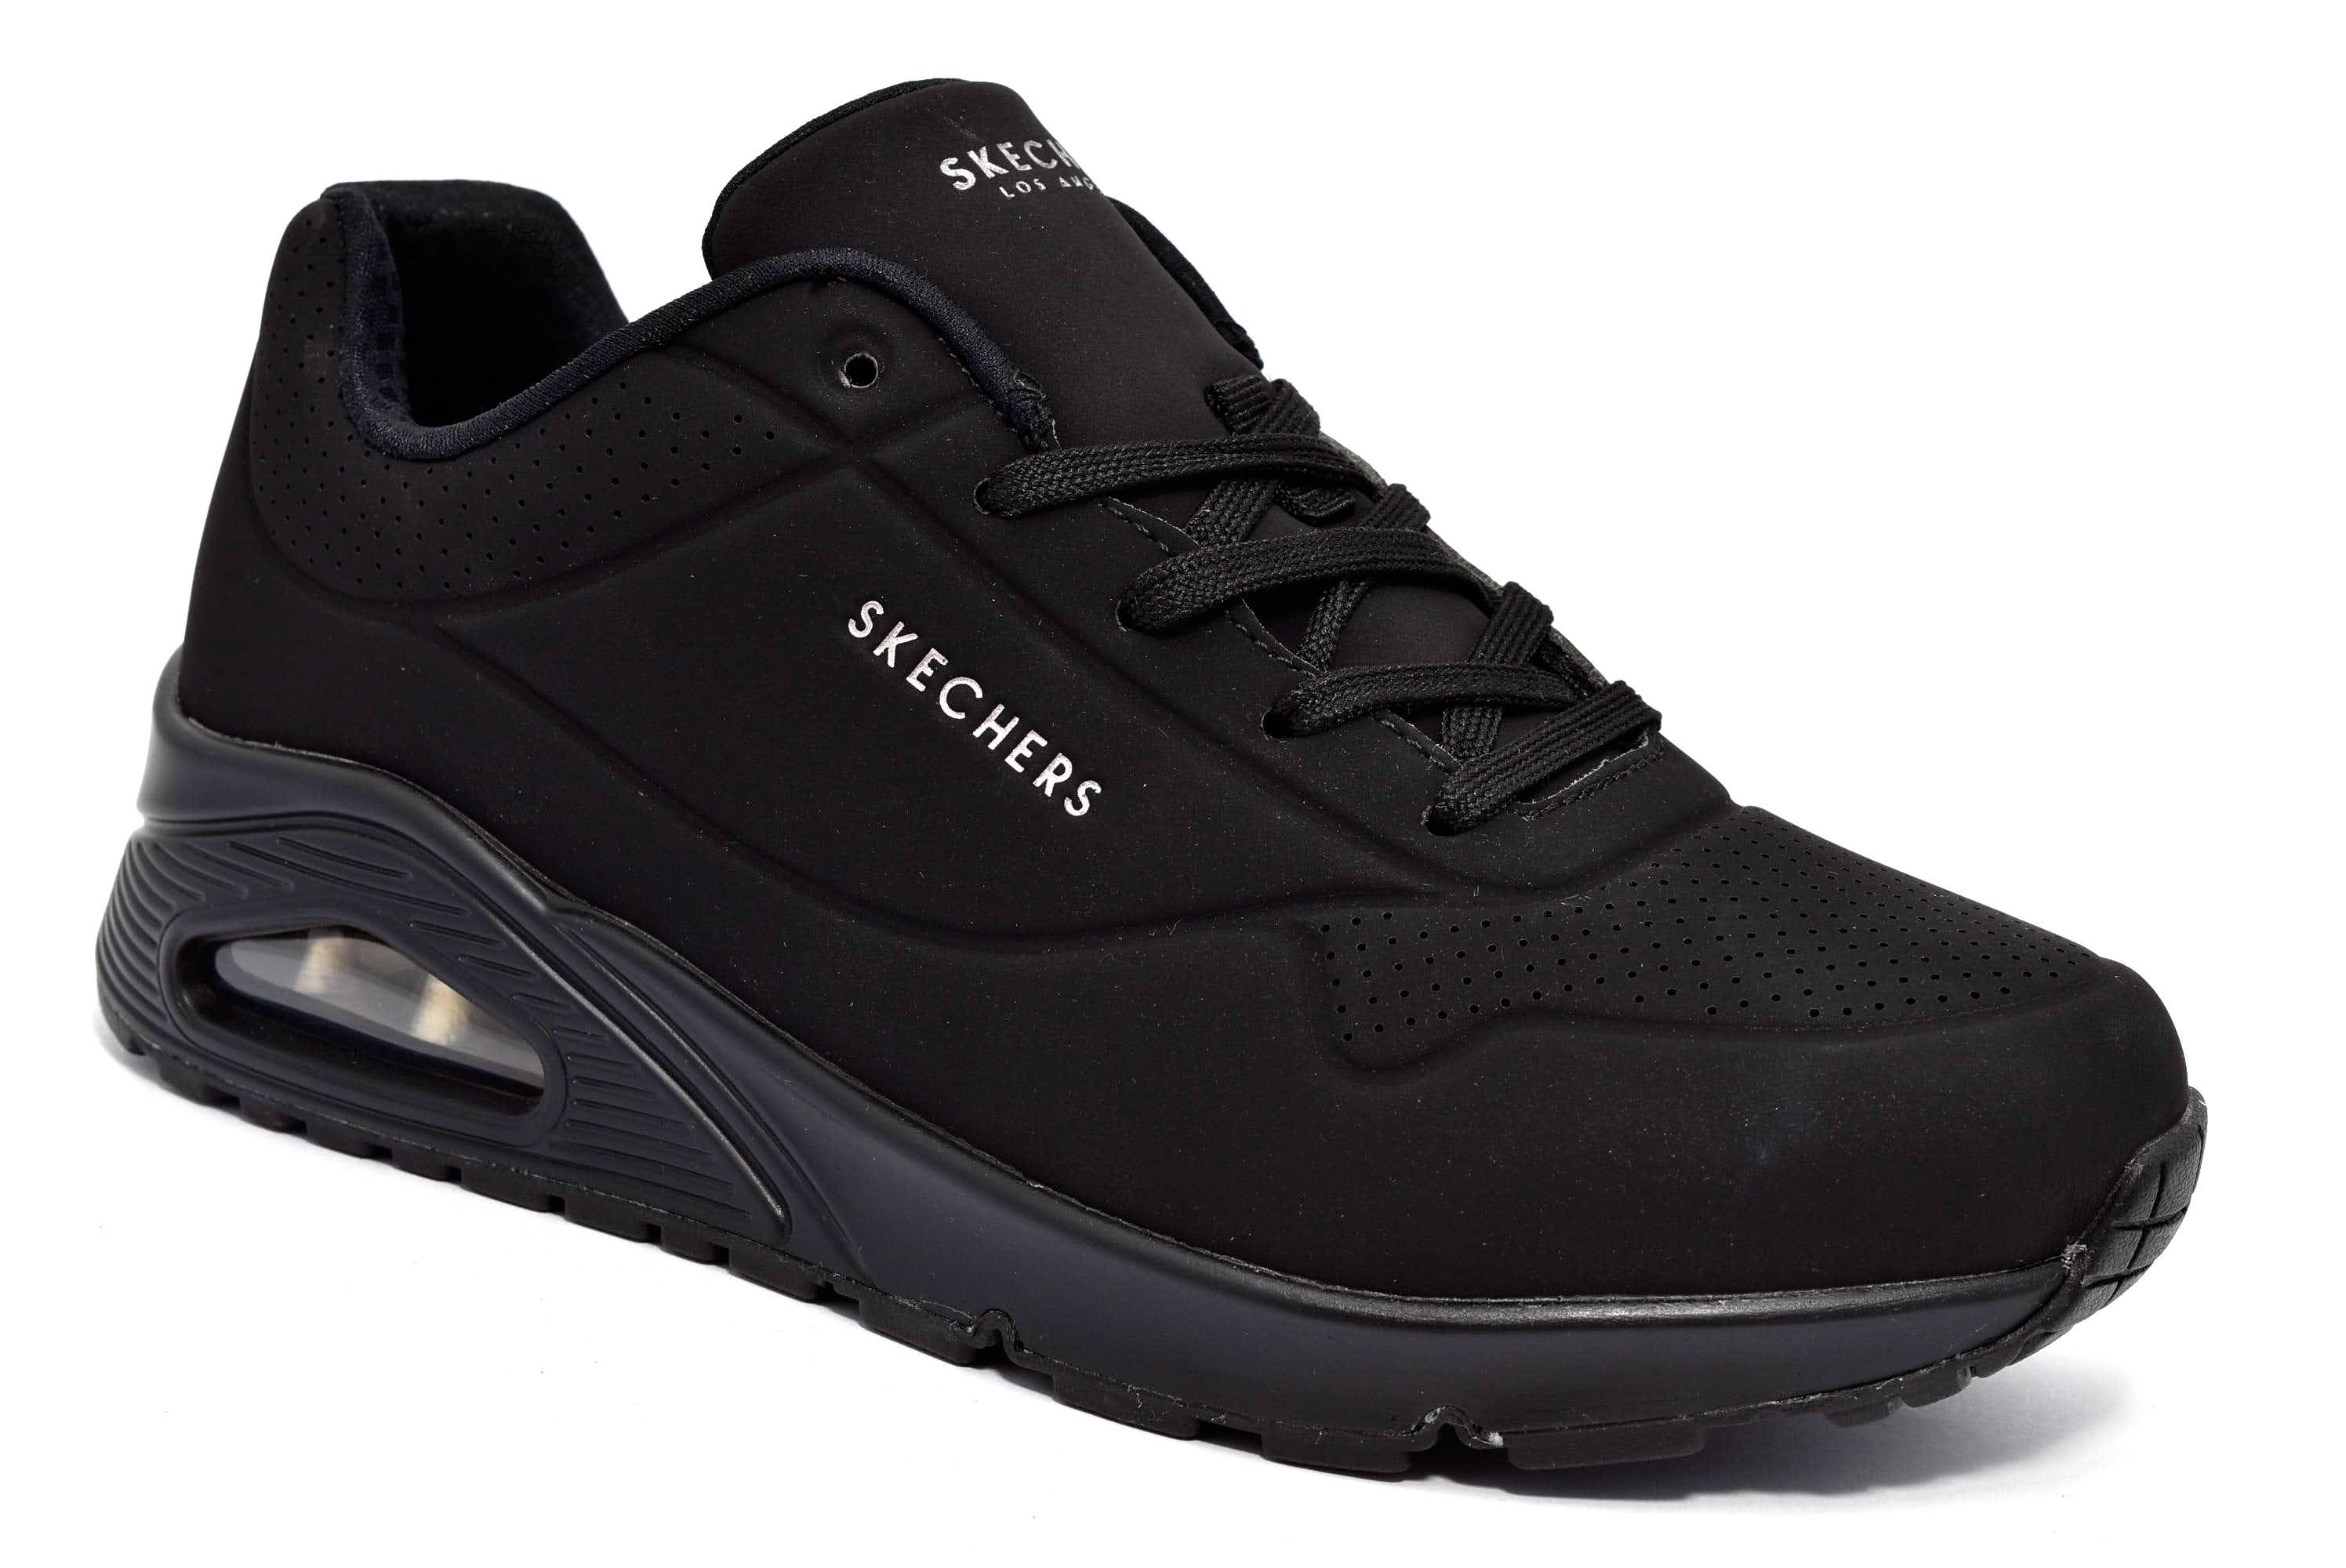 SKECHERS 73690 BBK NERO